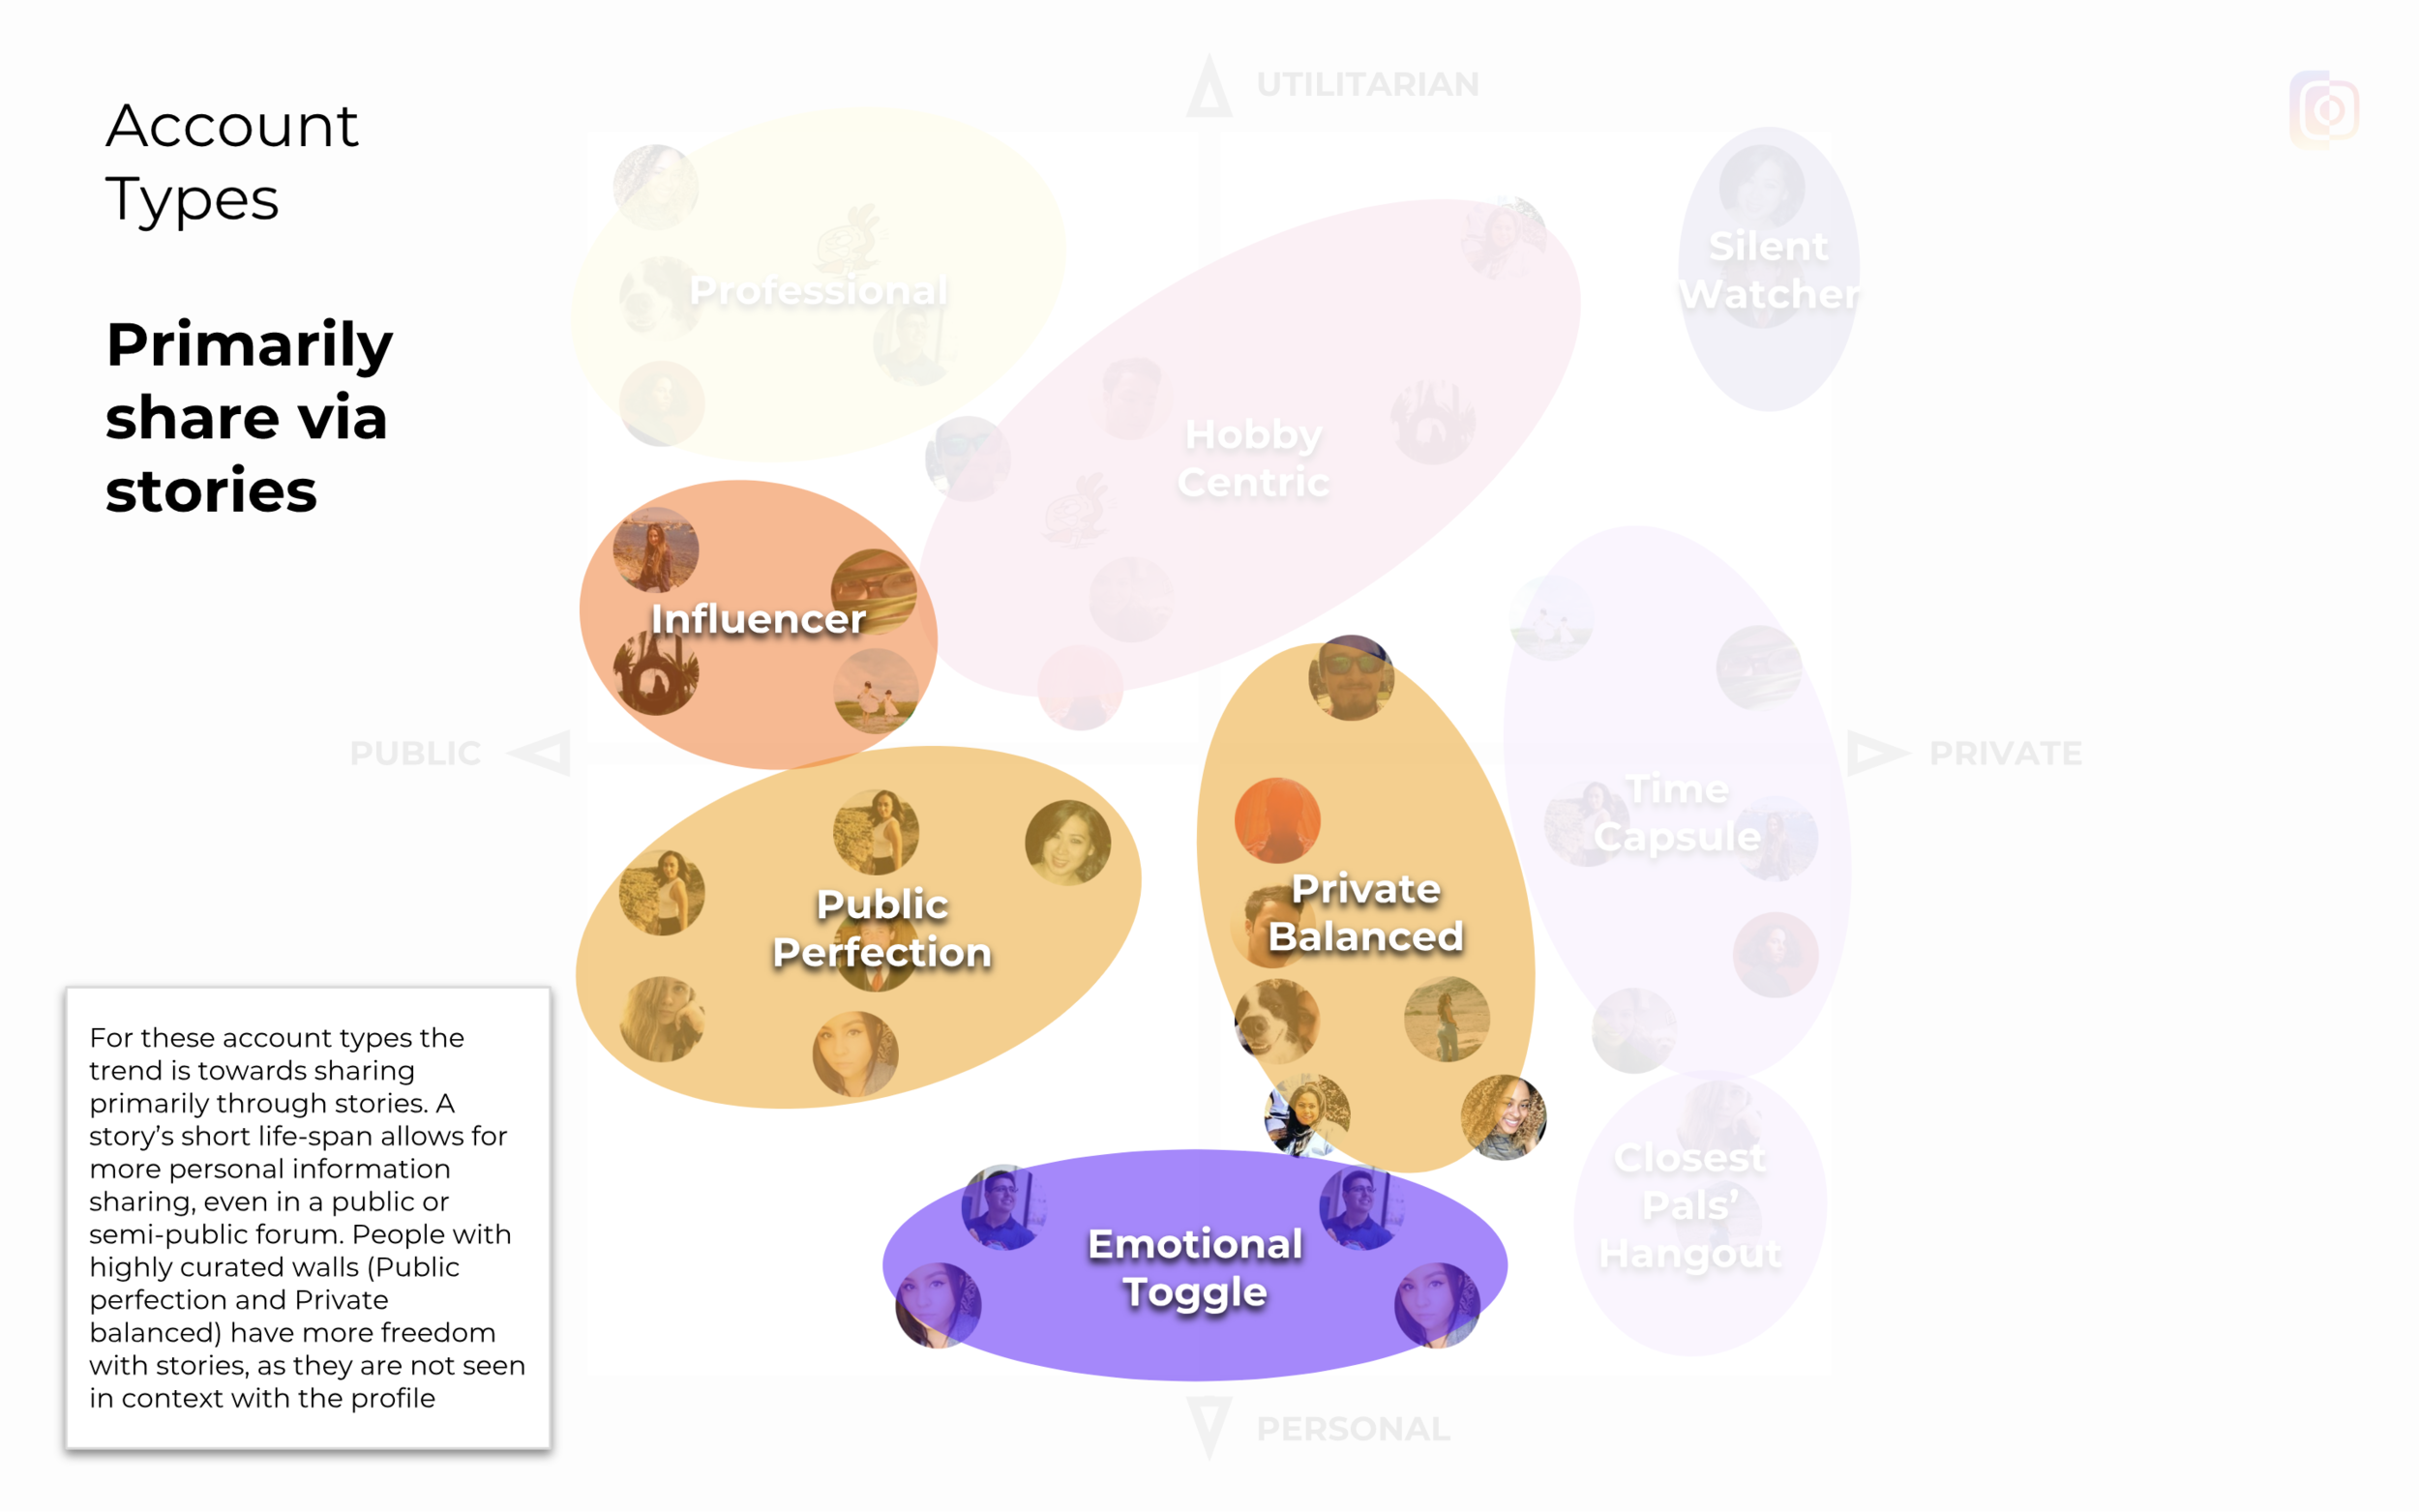 Clusters formed based on frequency of user behavior, such as number of posts to stories.